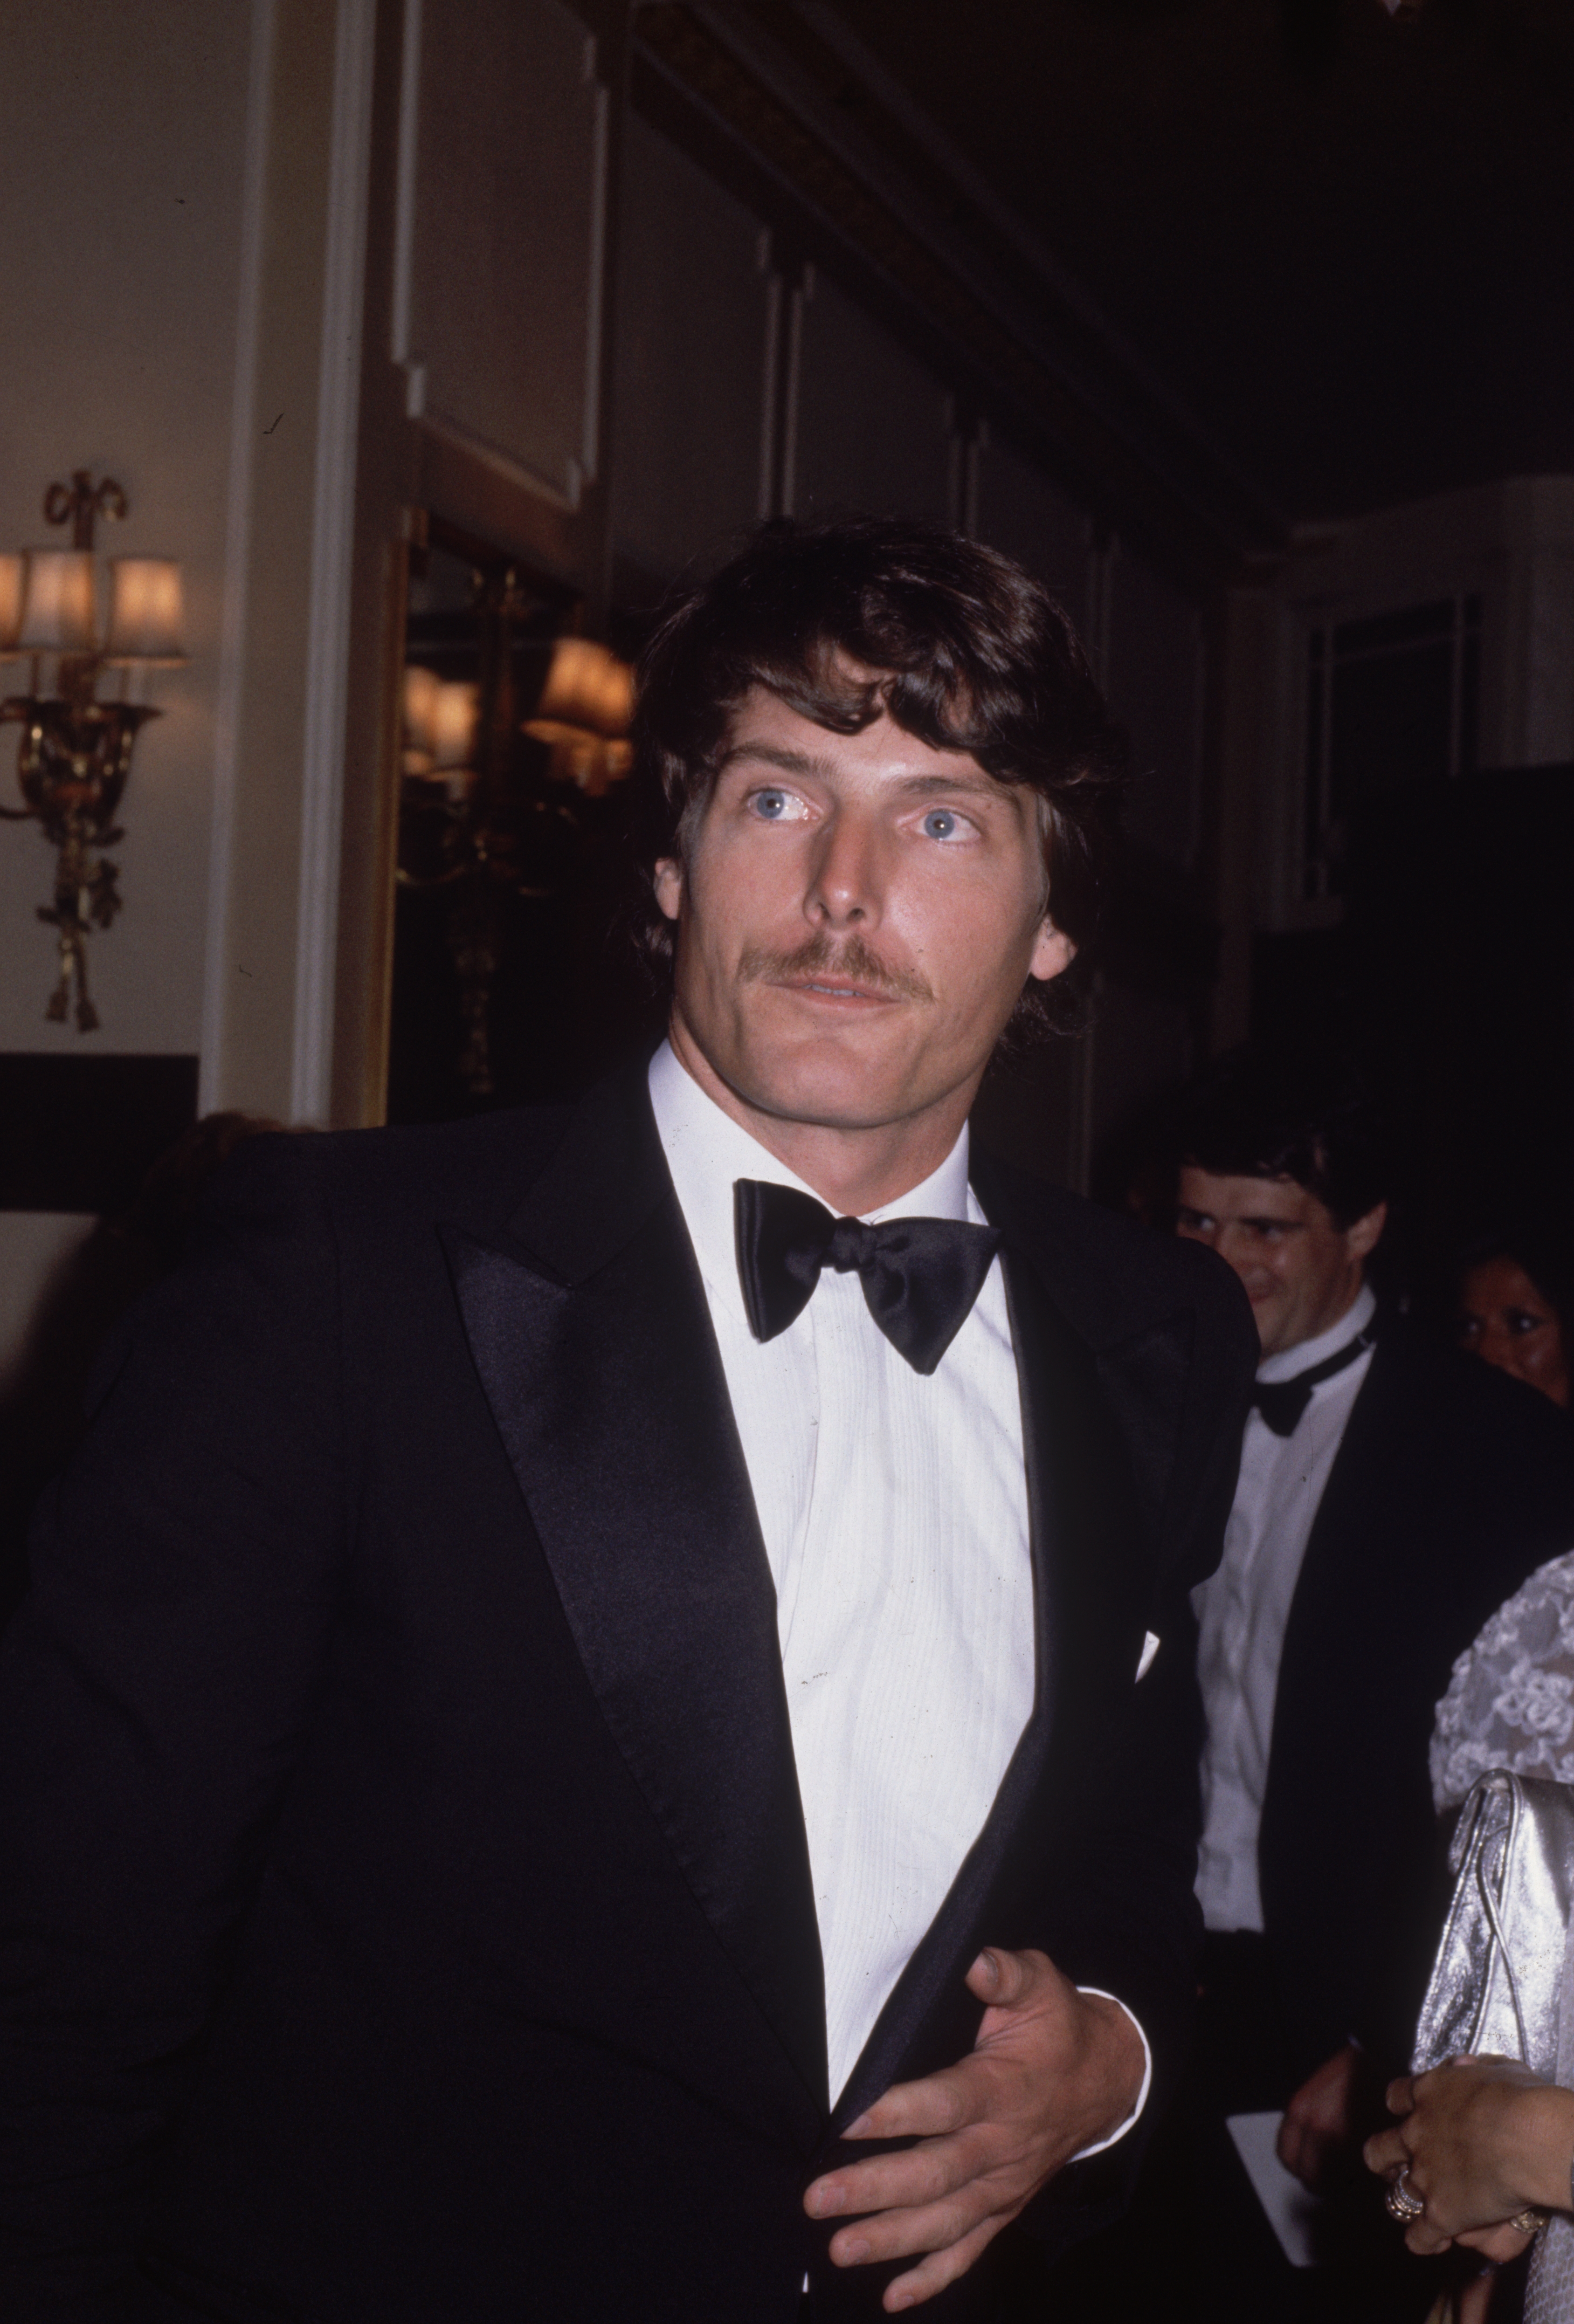 Caitlyn Jenner revealed sometime in the last year that she auditioned for the role of Superman, but unfortunately lost out the part to the 1978 film's eventual heartthrob Christopher Reeve. (Source: Getty Images)